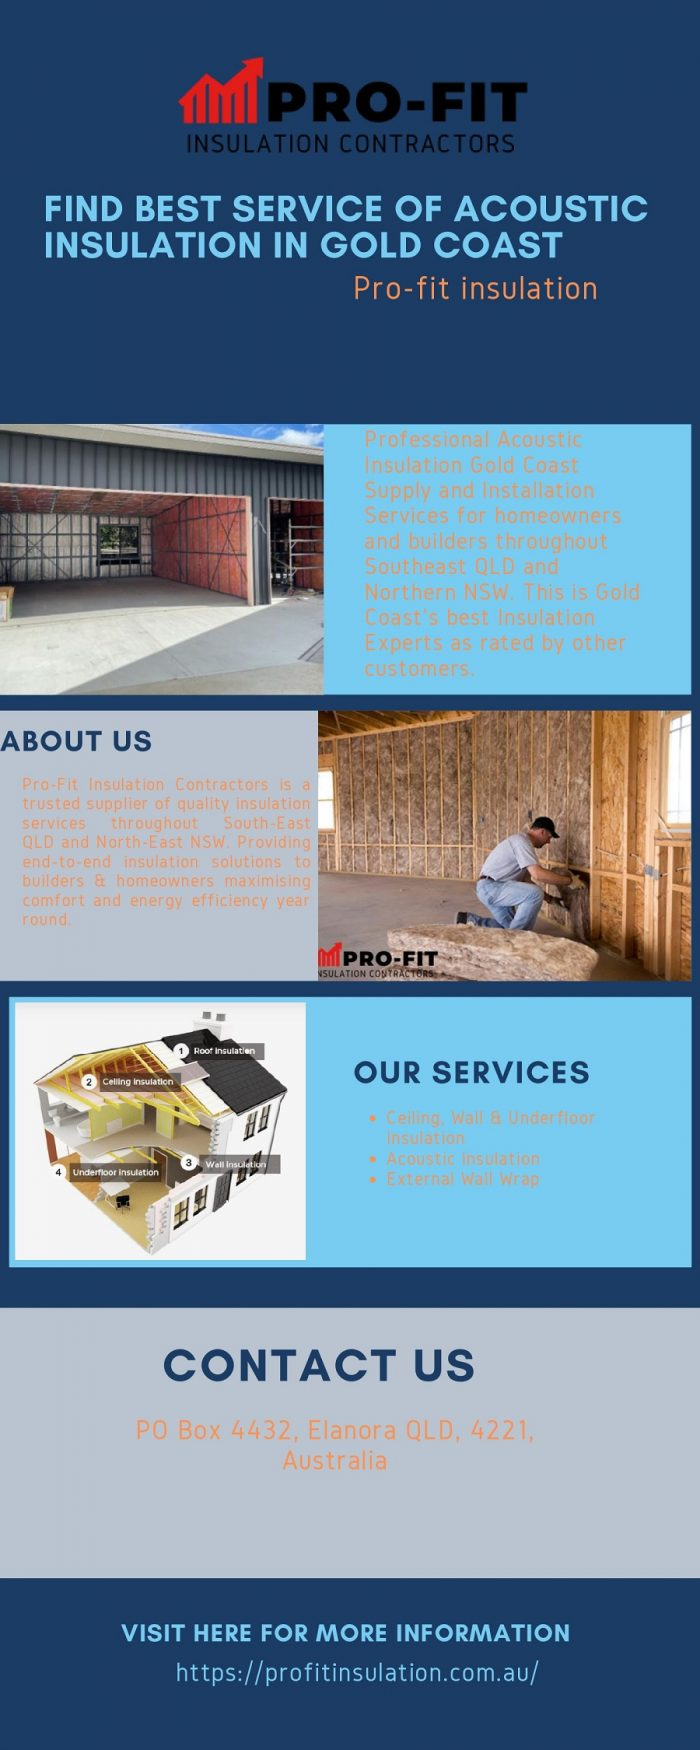 Find Best Service of Acoustic Insulation in Gold Coast